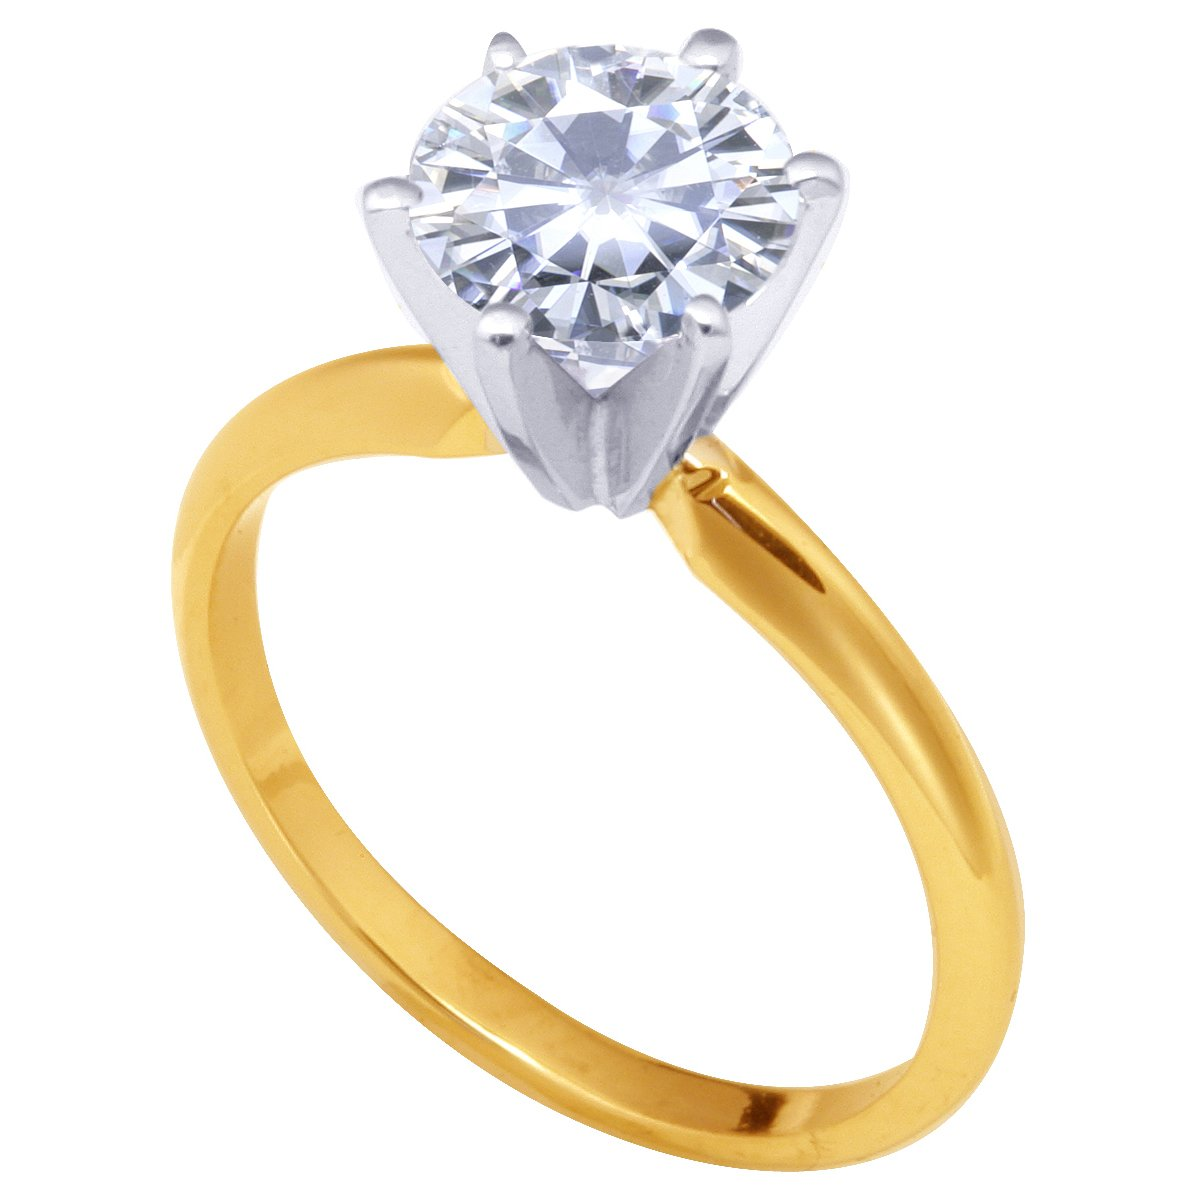 Stunning! 14k Yellow-gold 7.50mm (1.35CT Actual Weight, 1.50CT Diamond Equivalent Weight) Moissanite Solitaire 6-Prong Engagement Ring by Vicky K Designs - 6.5